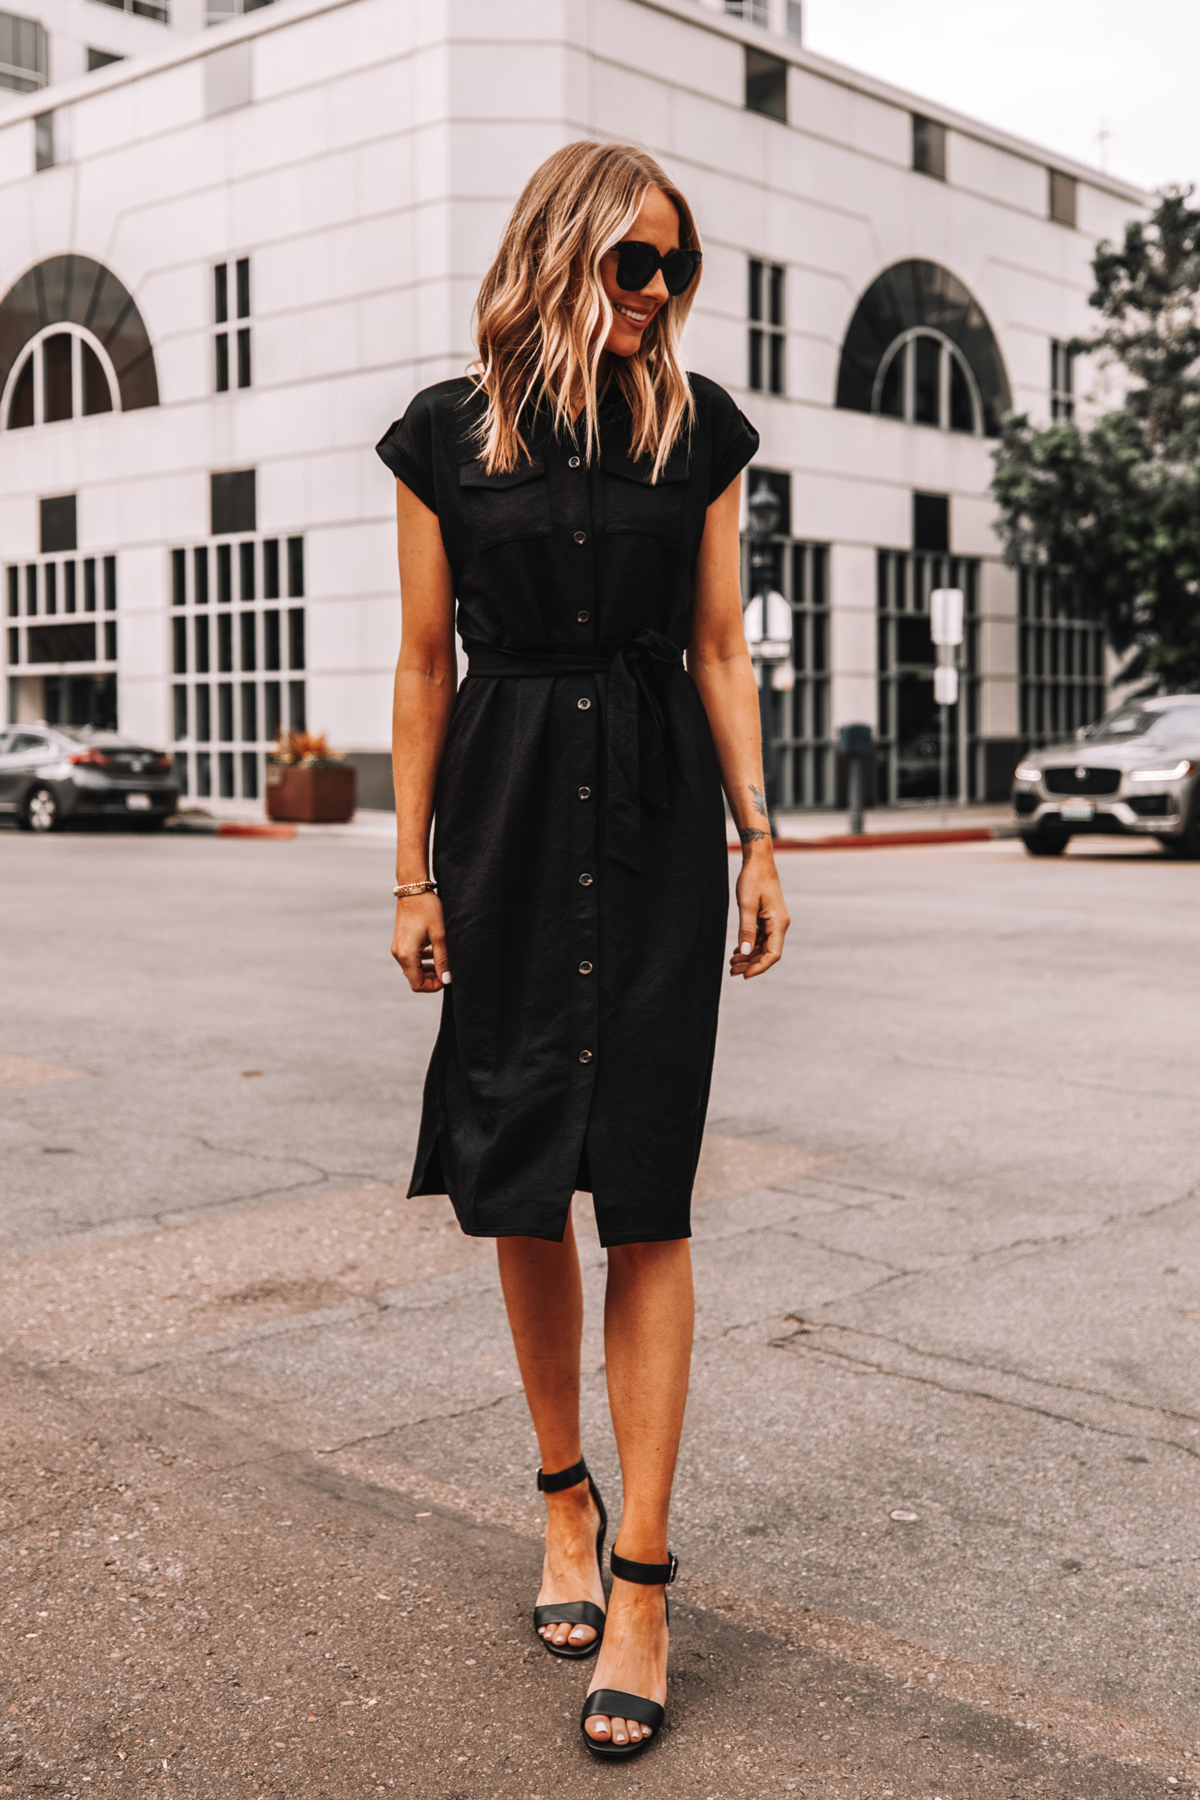 Fashion Jackson Wearing Ann Taylor Black Belted Shirt Dress Black Sandals Workwear Outfit 3